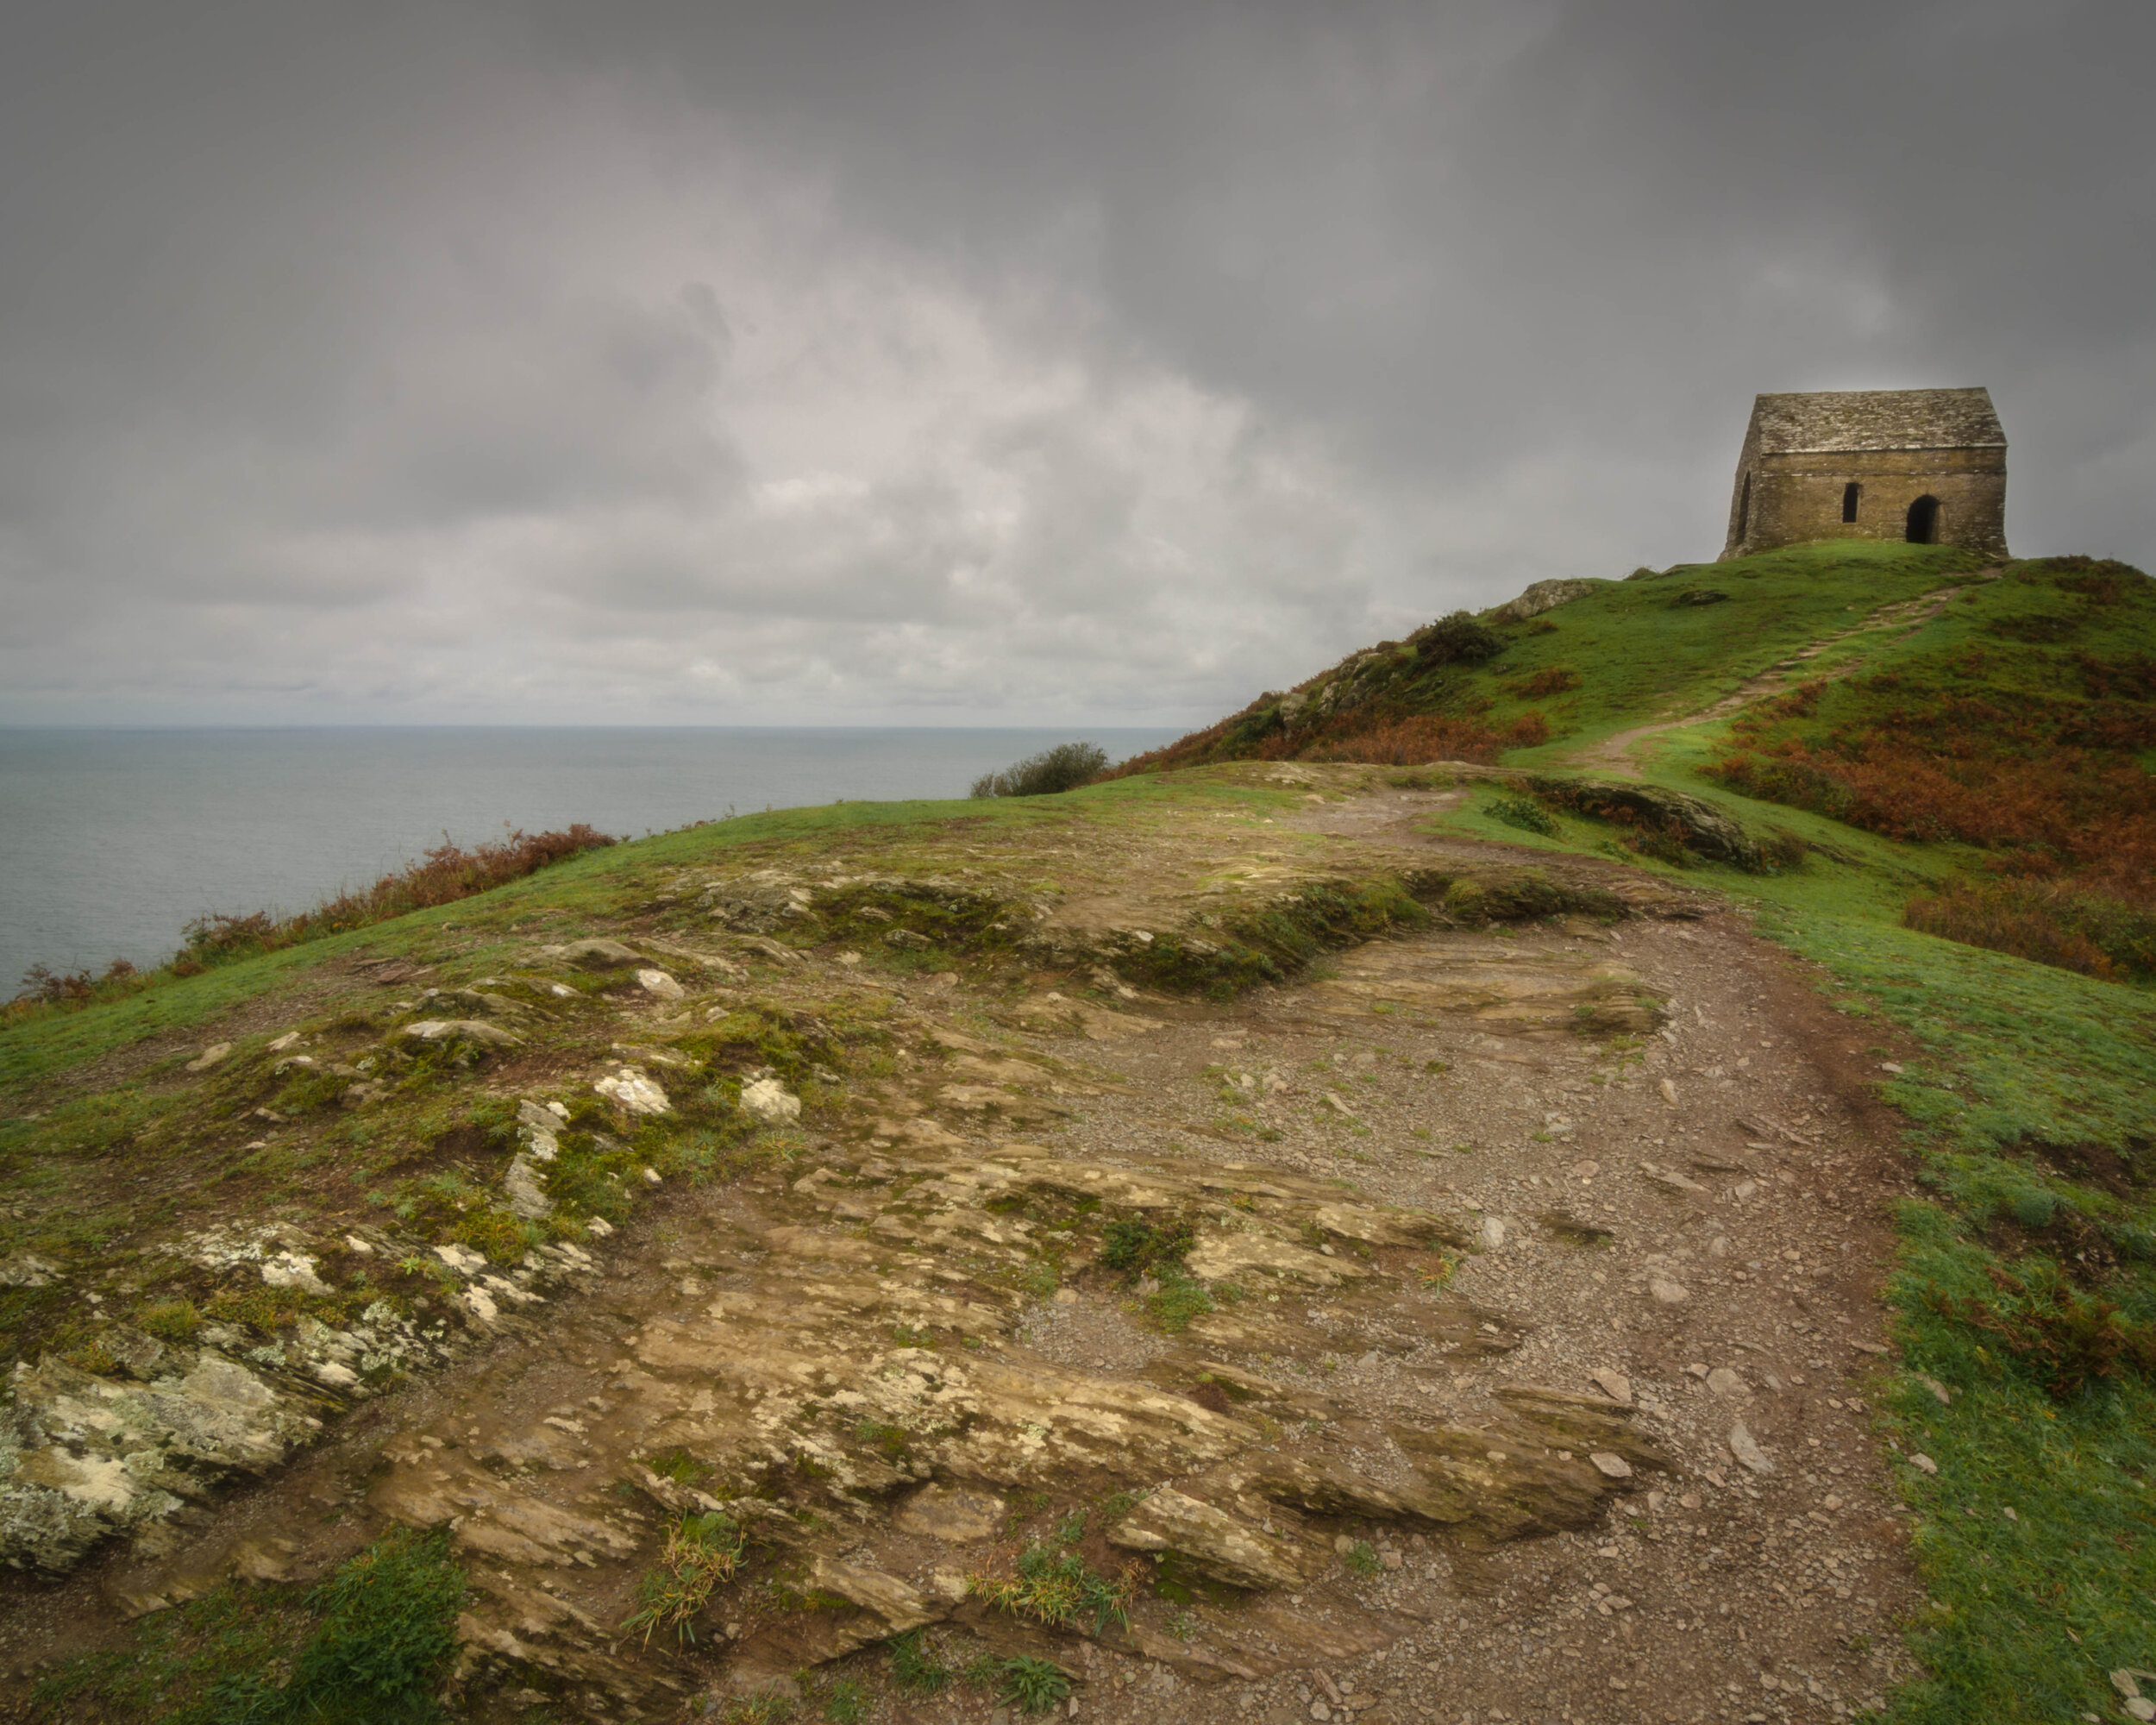 Come join me and Chris Sale for a mornings photography at the fantastic Rame Head on the Rame peninsula